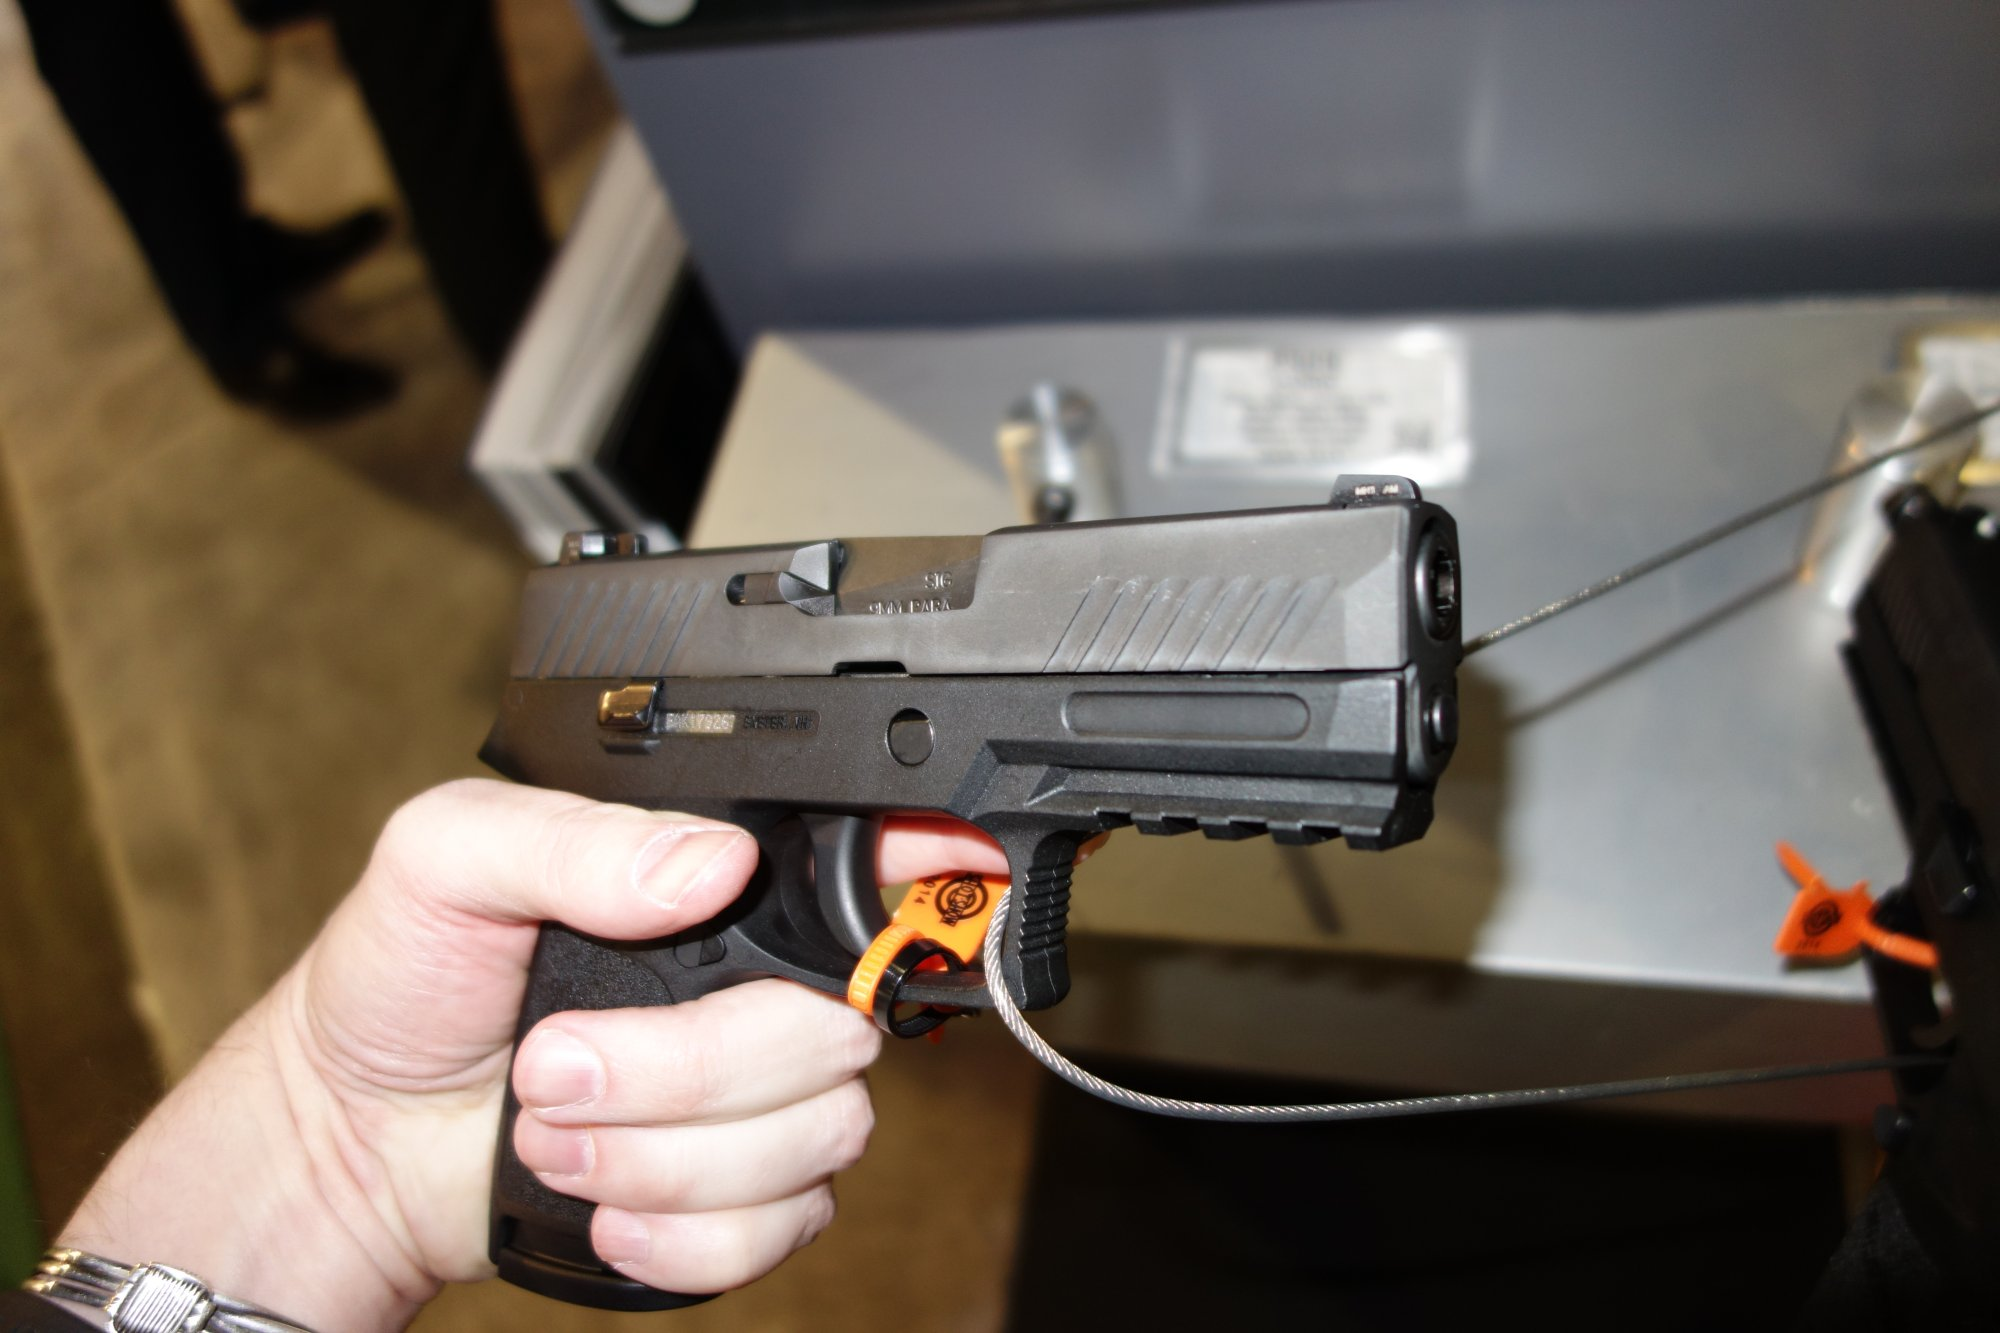 SIG SAUER P320 Carry Nitron SIG P320C Nitron Compact Combat Tactical Pistol 9mm .40 SW .357 SIG  for Concealed Carry SHOT Show 2014 1 14 14 David Crane DefenseReview.com DR 7 SIG SAUER P320 Nitron Striker Fired, Polymer Frame Semi Auto Combat/Tactical Pistol Series: Meet the SIG 320C (SIG 320 Carry/Compact) and SIG 320F (SIG 320 Full Size) 9mm/.40 S&W/.357 SIG Pistols